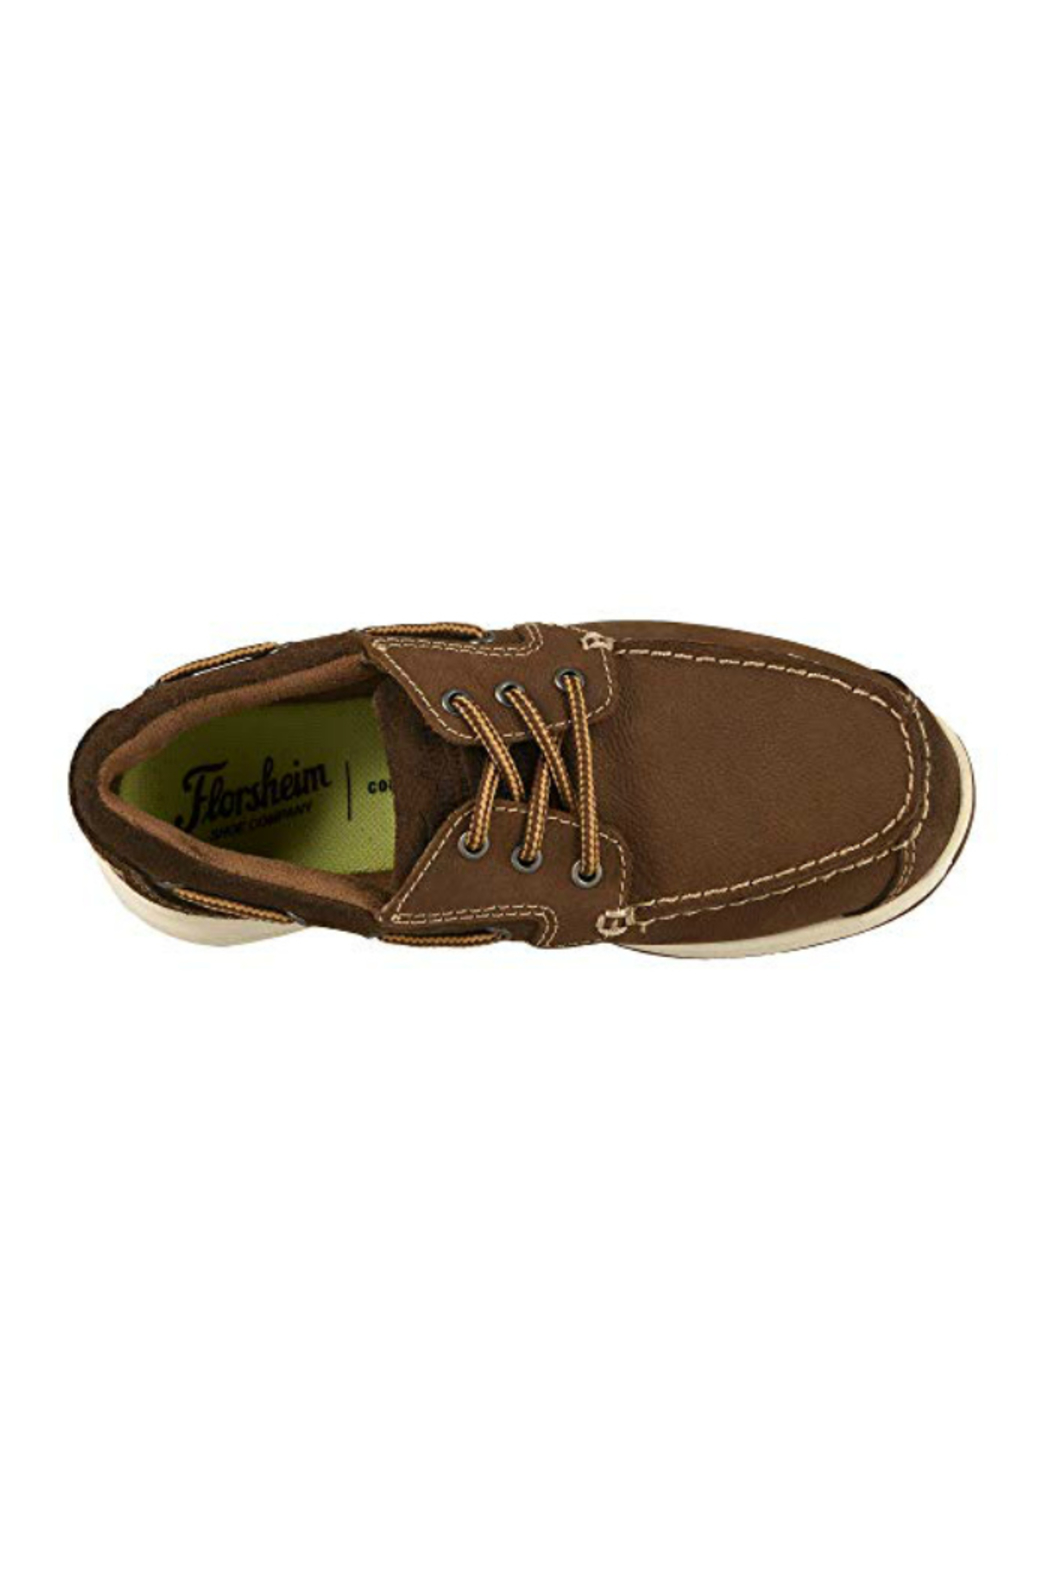 Florsheim FLORSHEIM GREAT LAKES OX JR - Front Full Image